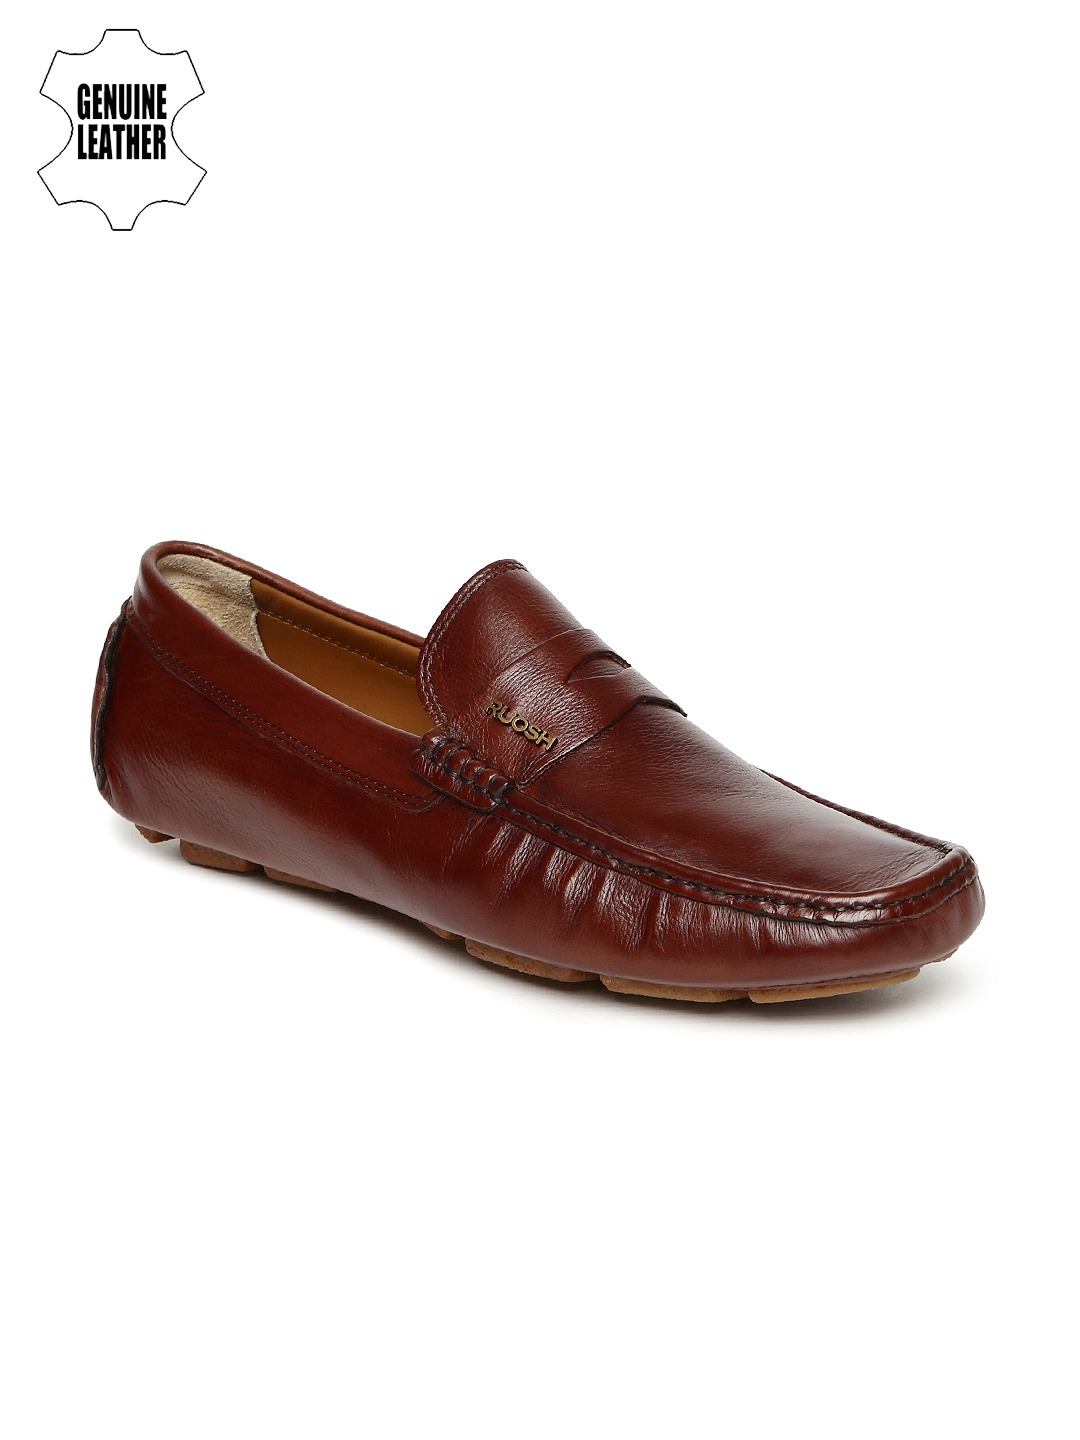 Brown Leather Driving Shoes